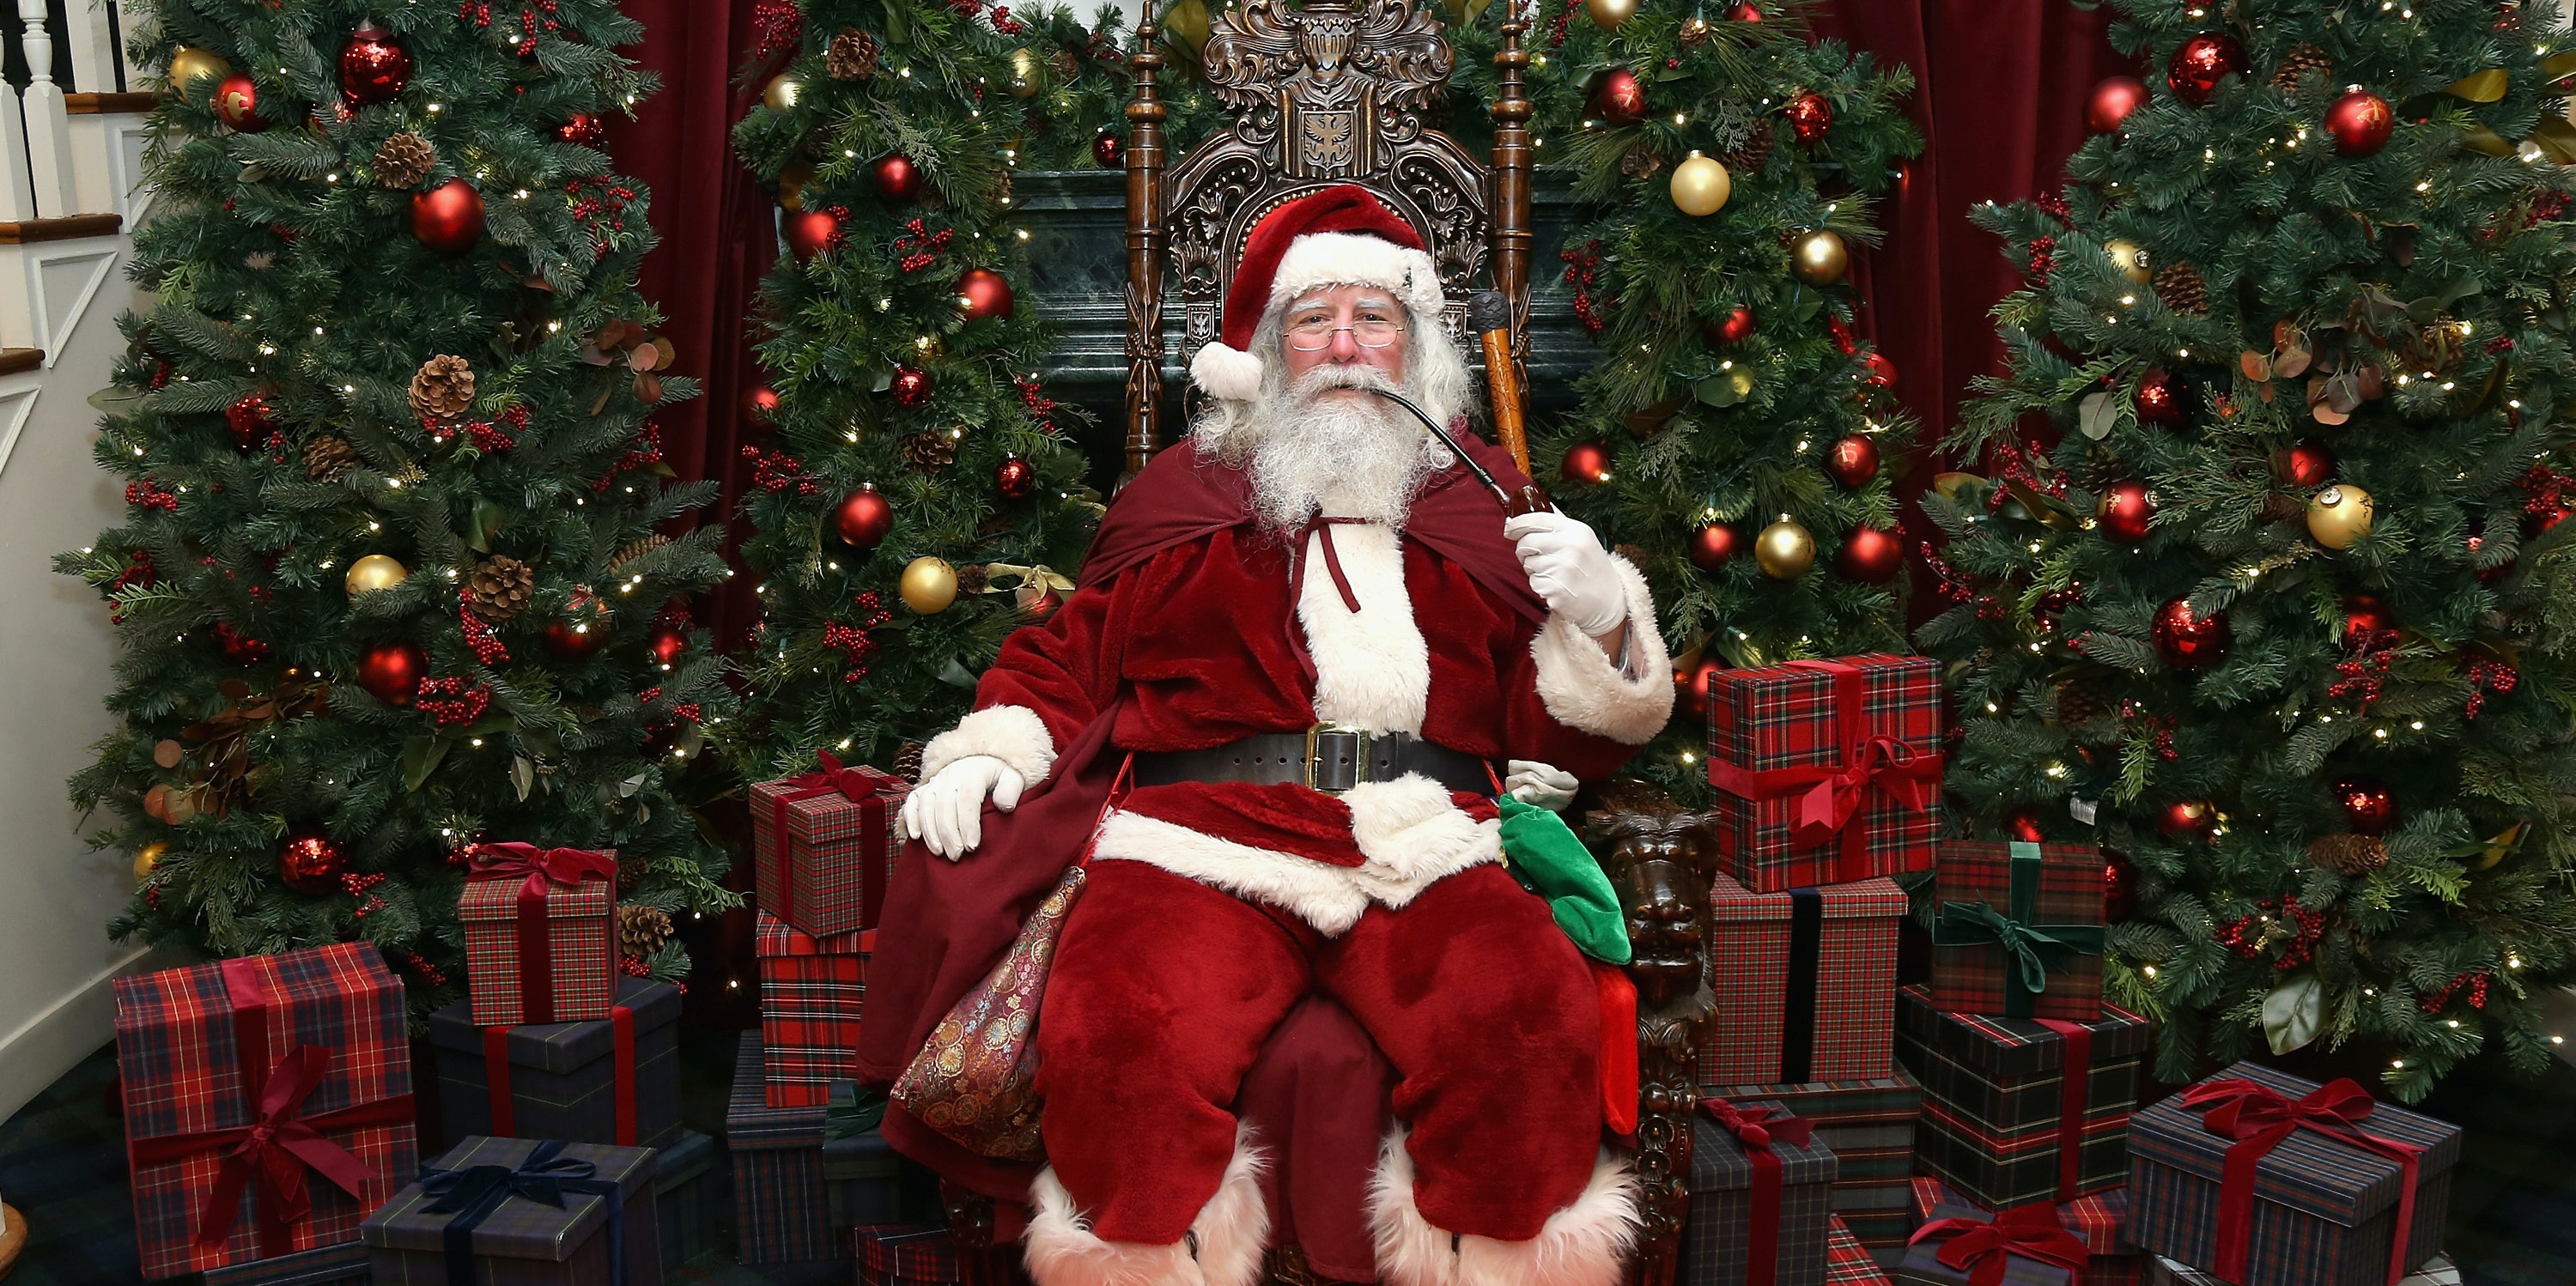 Santa Claus attends an evening hosted by Brooks Brothers to celebrate the holidays with St. Jude Children's Research Hospital at Brooks Brothers on December 13, 2016 in New York City.